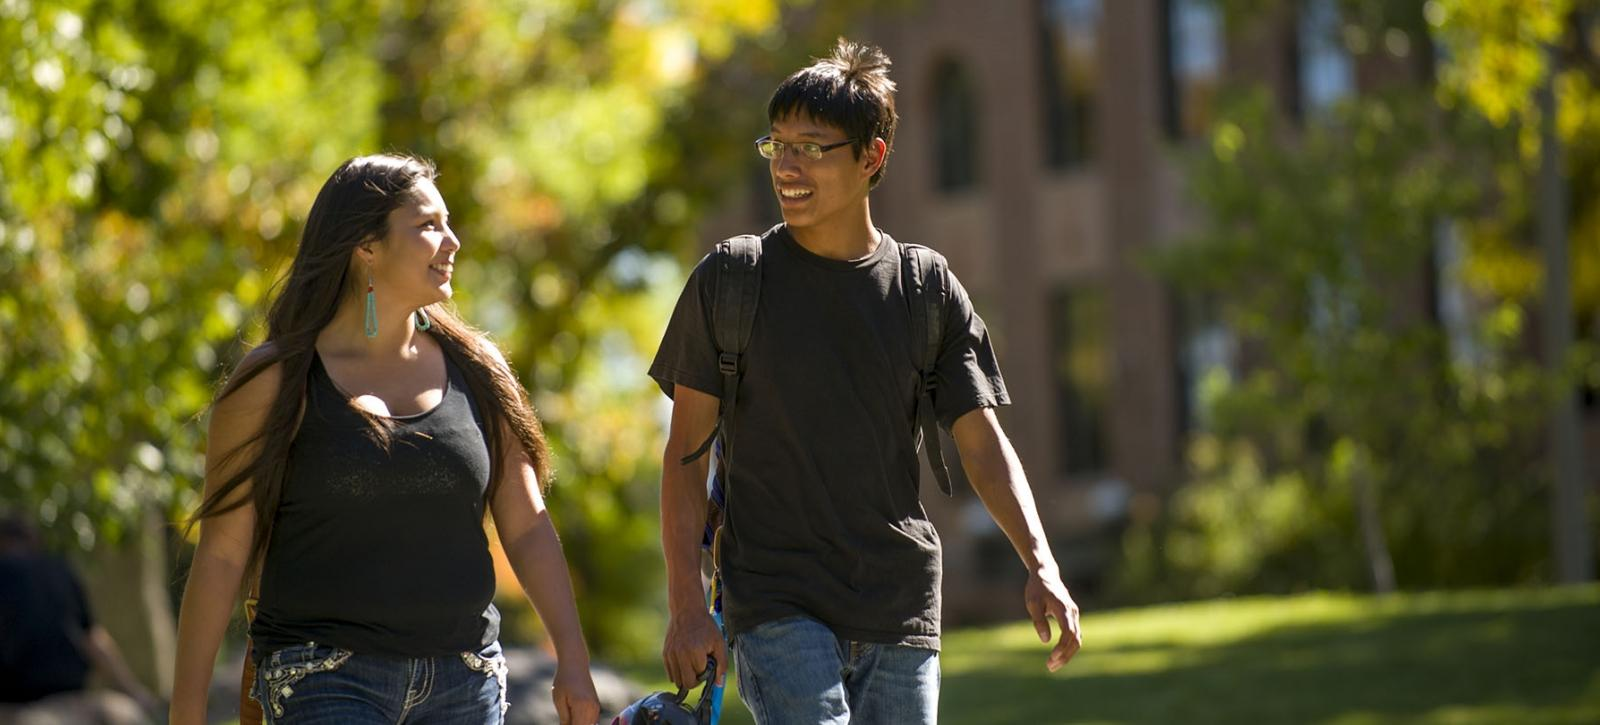 two native american students walking through campus in the afternoon